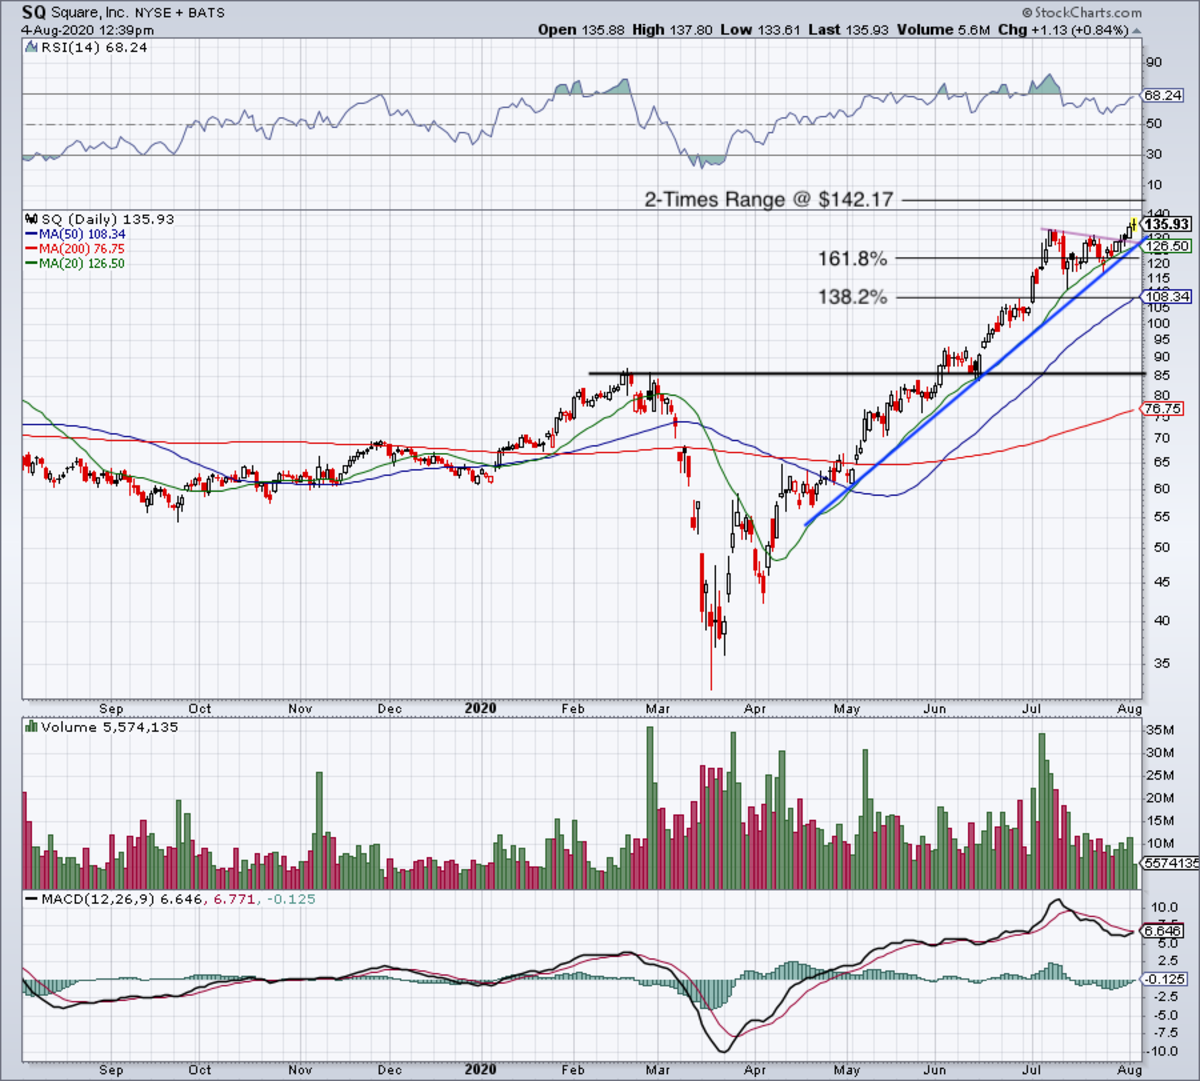 Daily chart of Square stock.